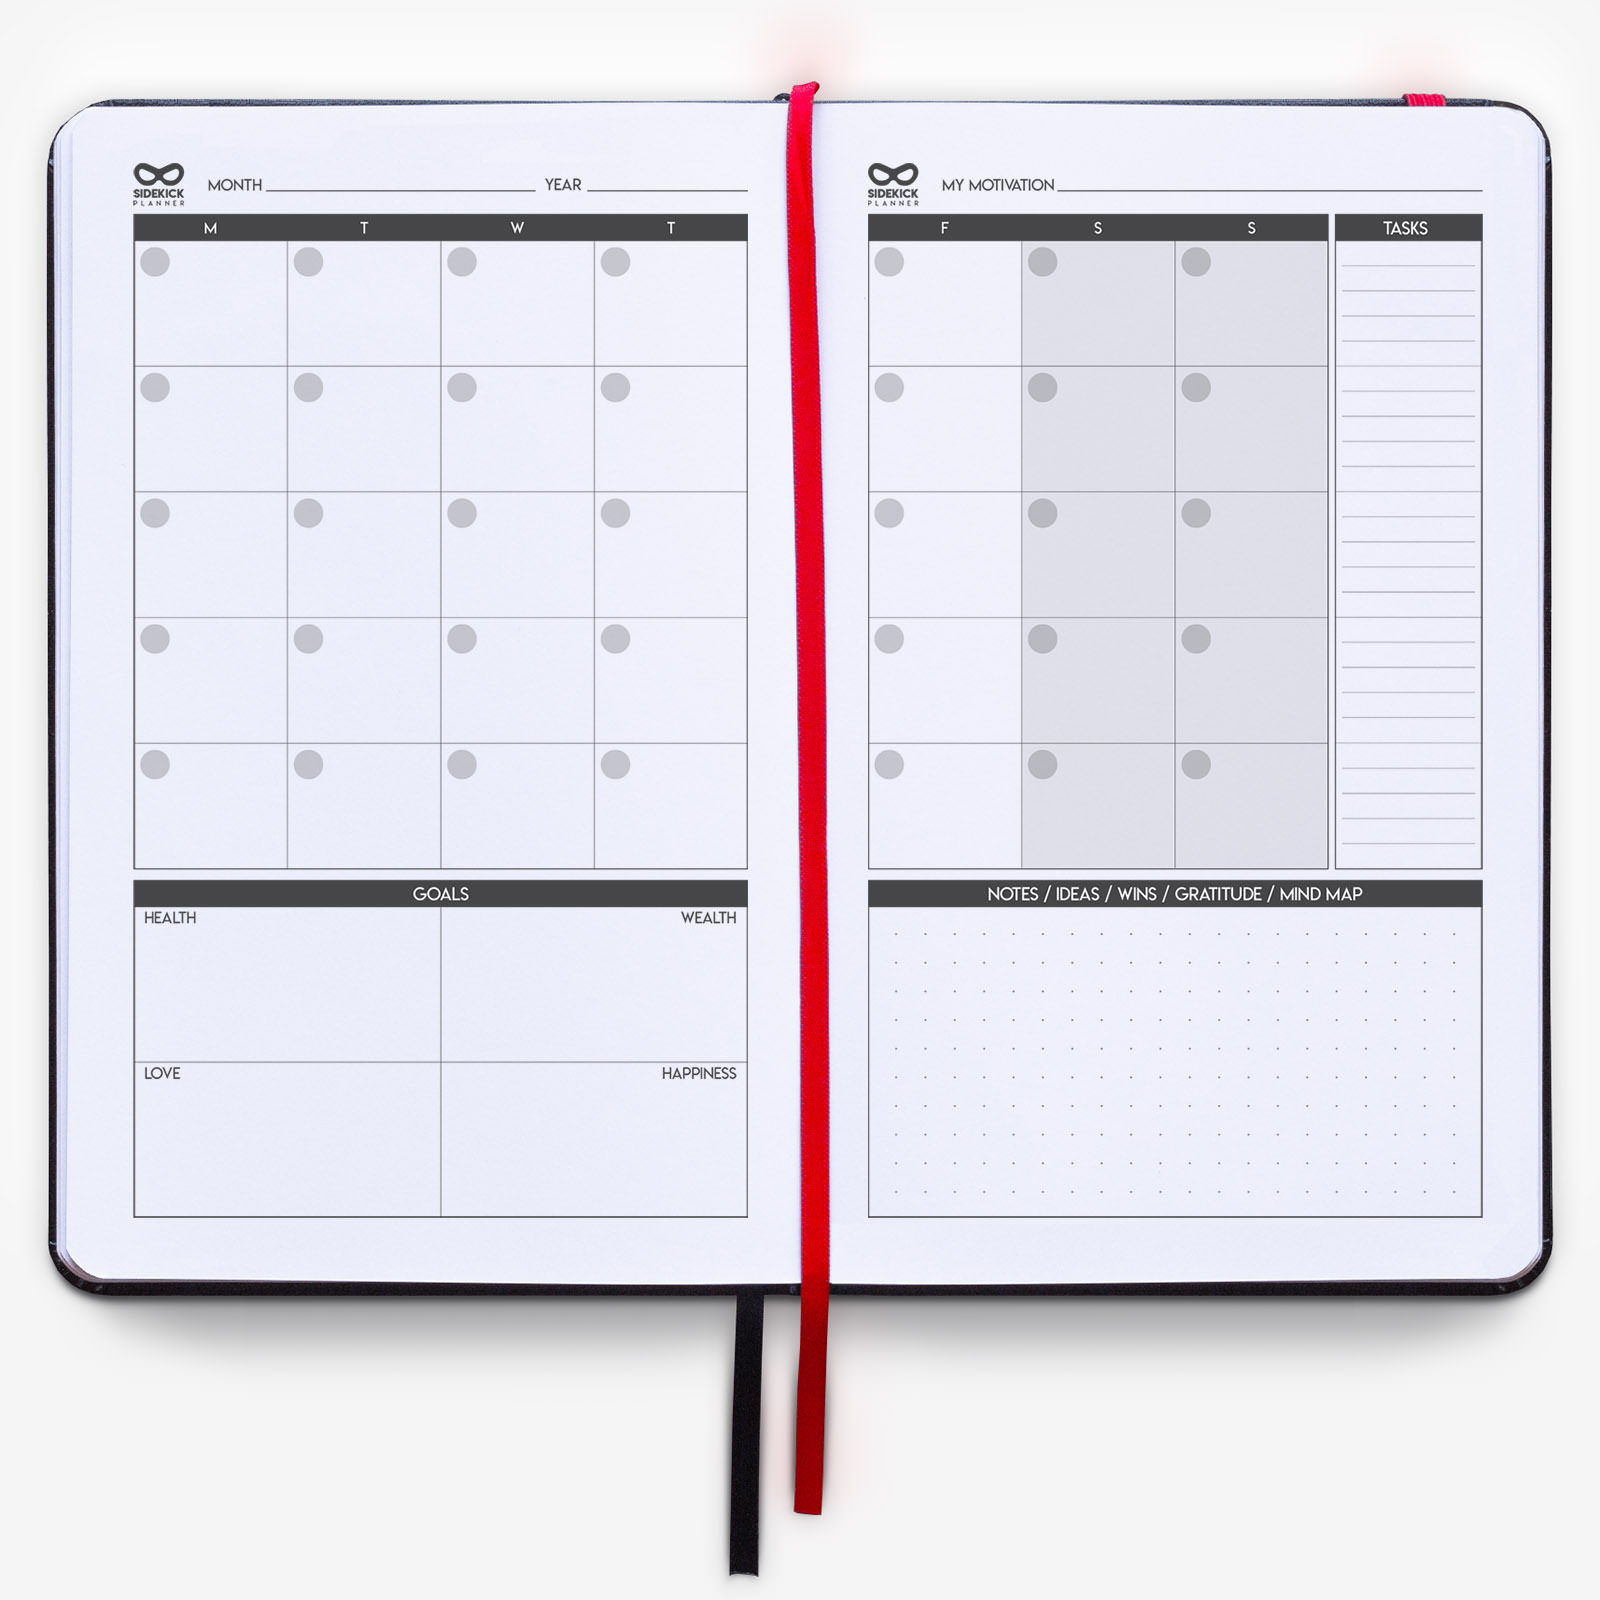 sidekick planner open pages montly review and planning notebook journal red bookmark